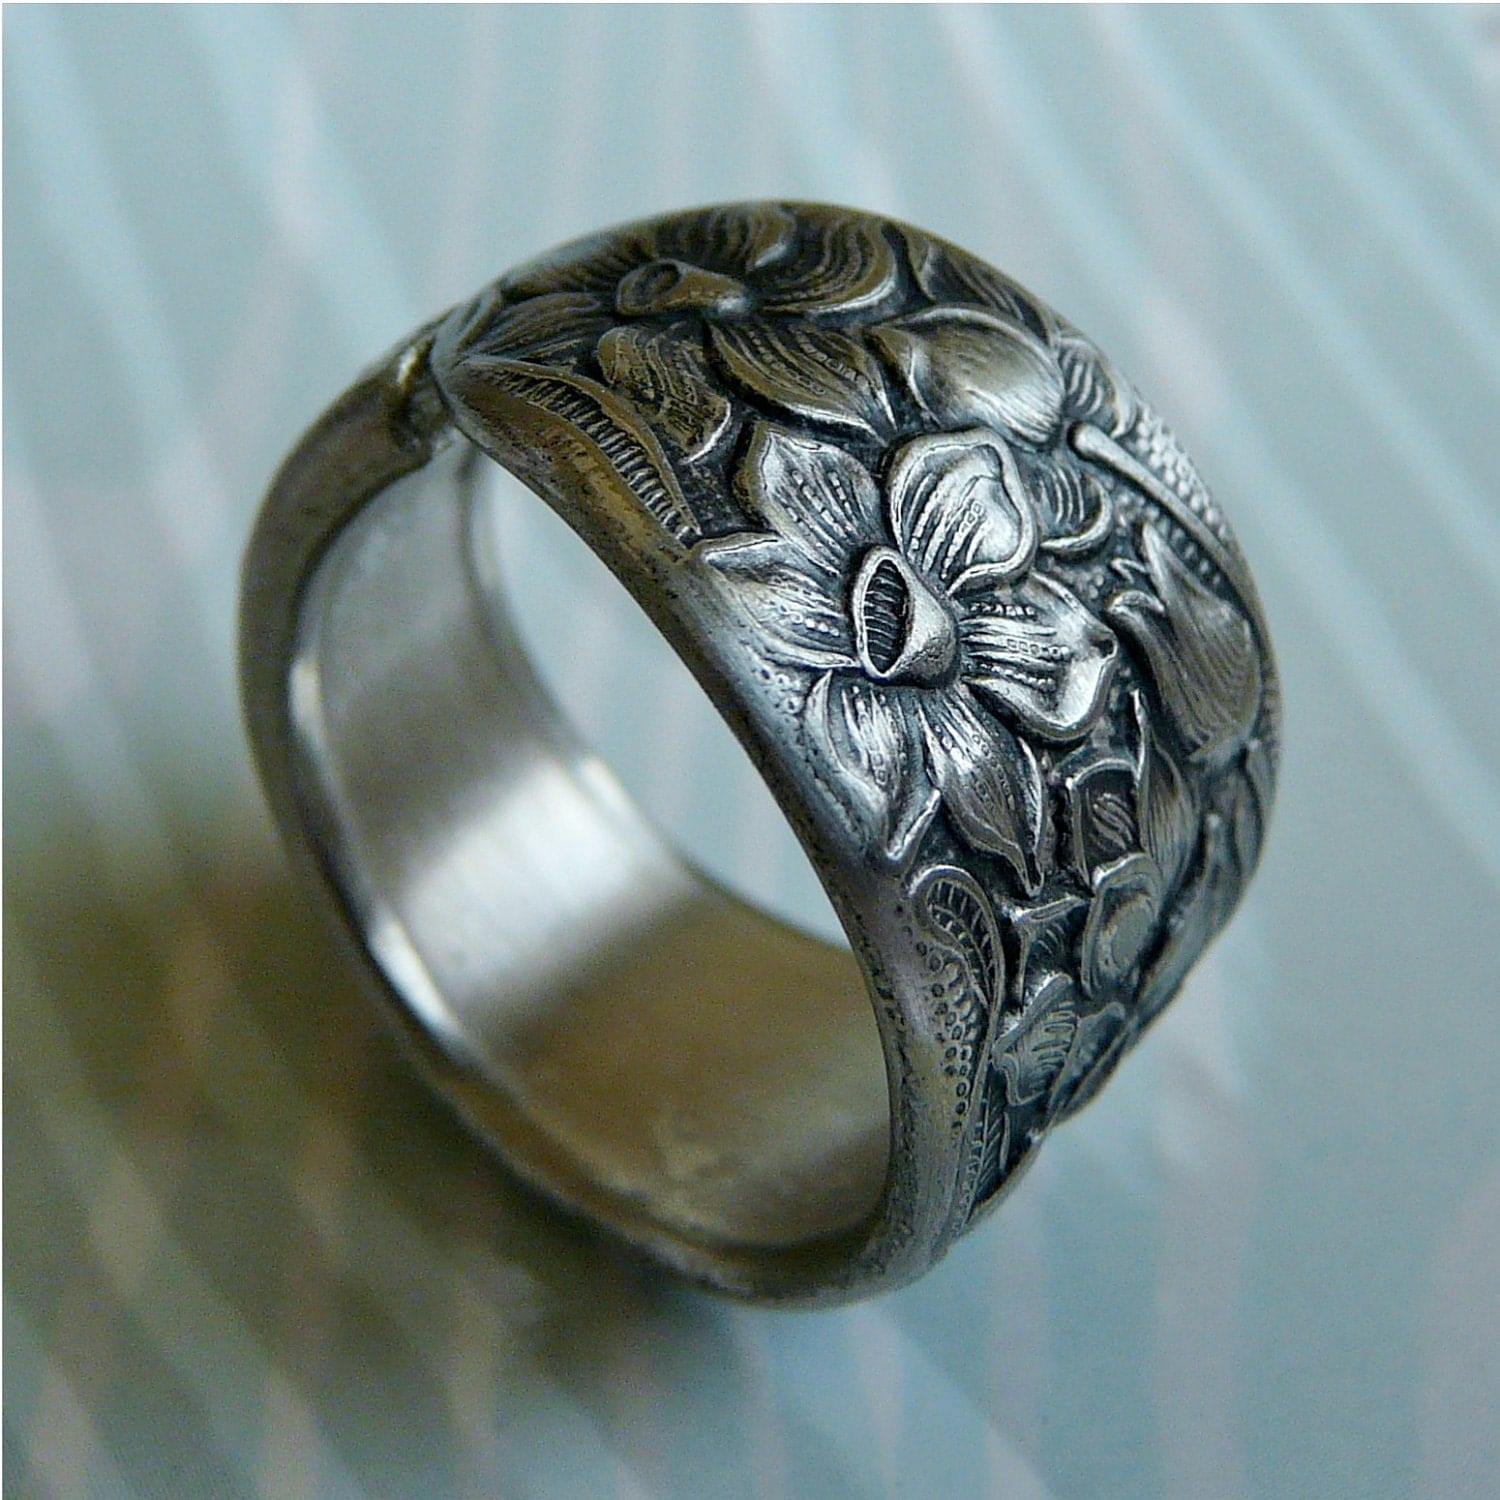 spoon ring antique silver pattern narcissus by revisions